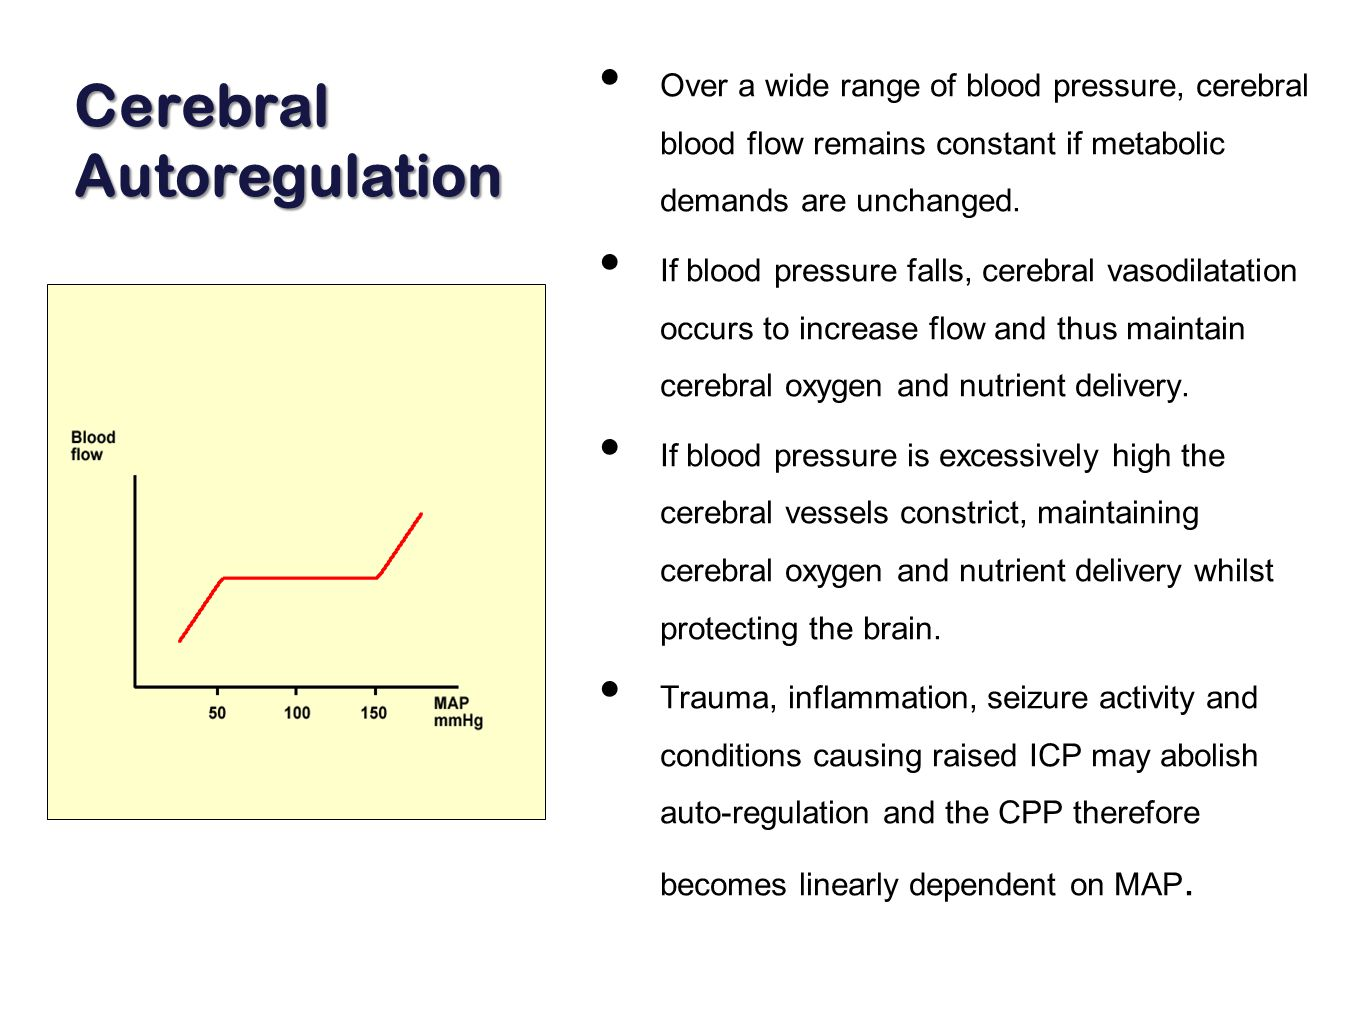 Cerebral Autoregulation Over a wide range of blood pressure, cerebral blood flow remains constant if metabolic demands are unchanged.